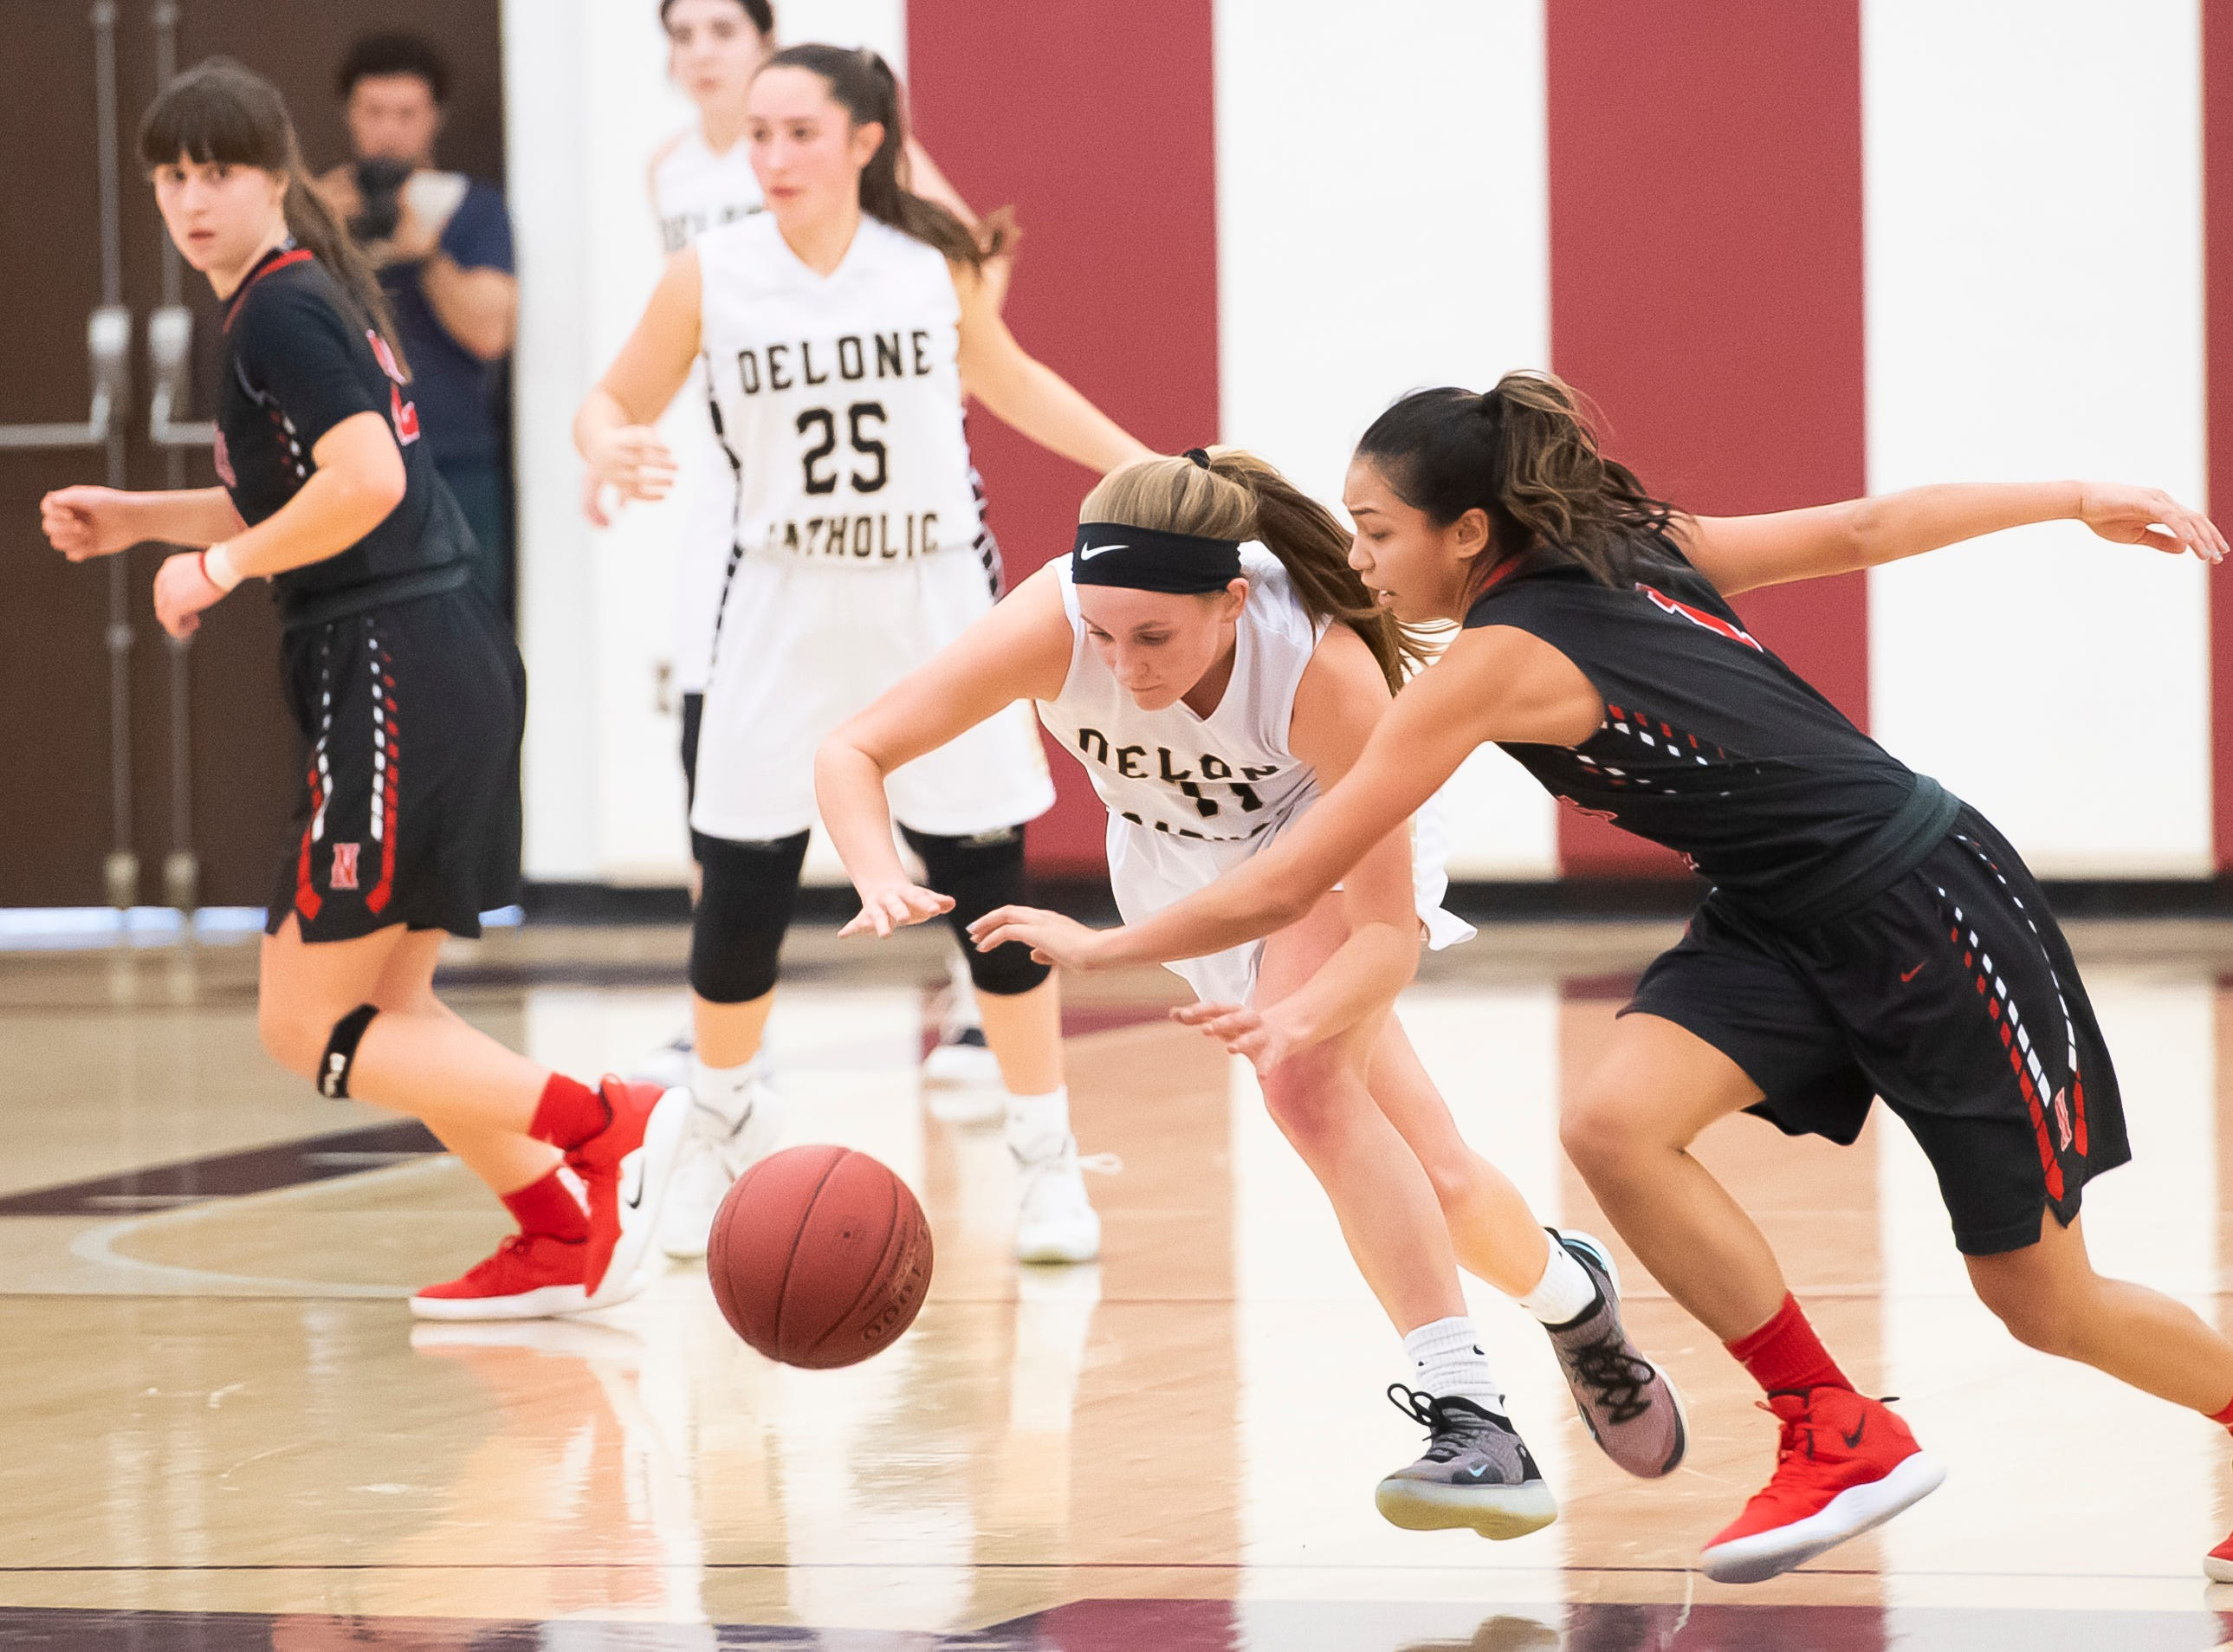 Delone Catholic's Riley Vingsen tries to make a steal on Neshannock's Neleh Nogay during a PIAA 3A quarterfinal in Altoona, Pa., on Friday, March 15, 2019. The Squirettes won 50-41.